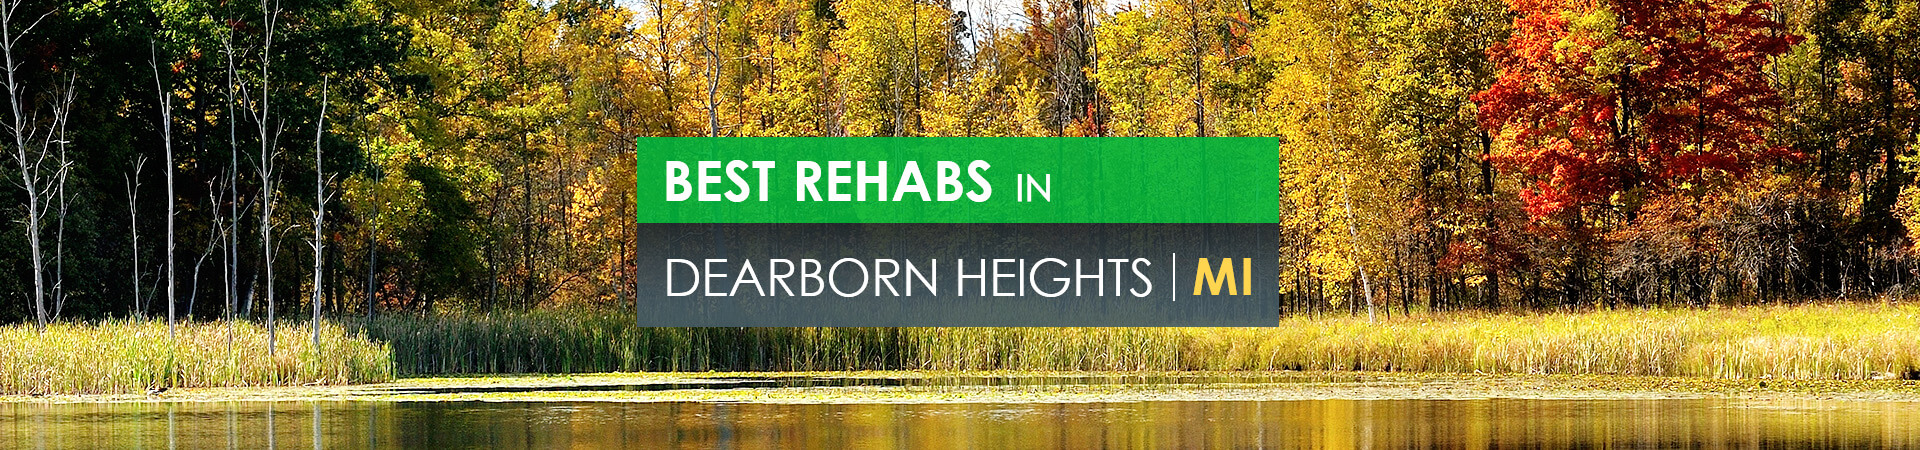 Best rehabs in Dearborn Heights, MI